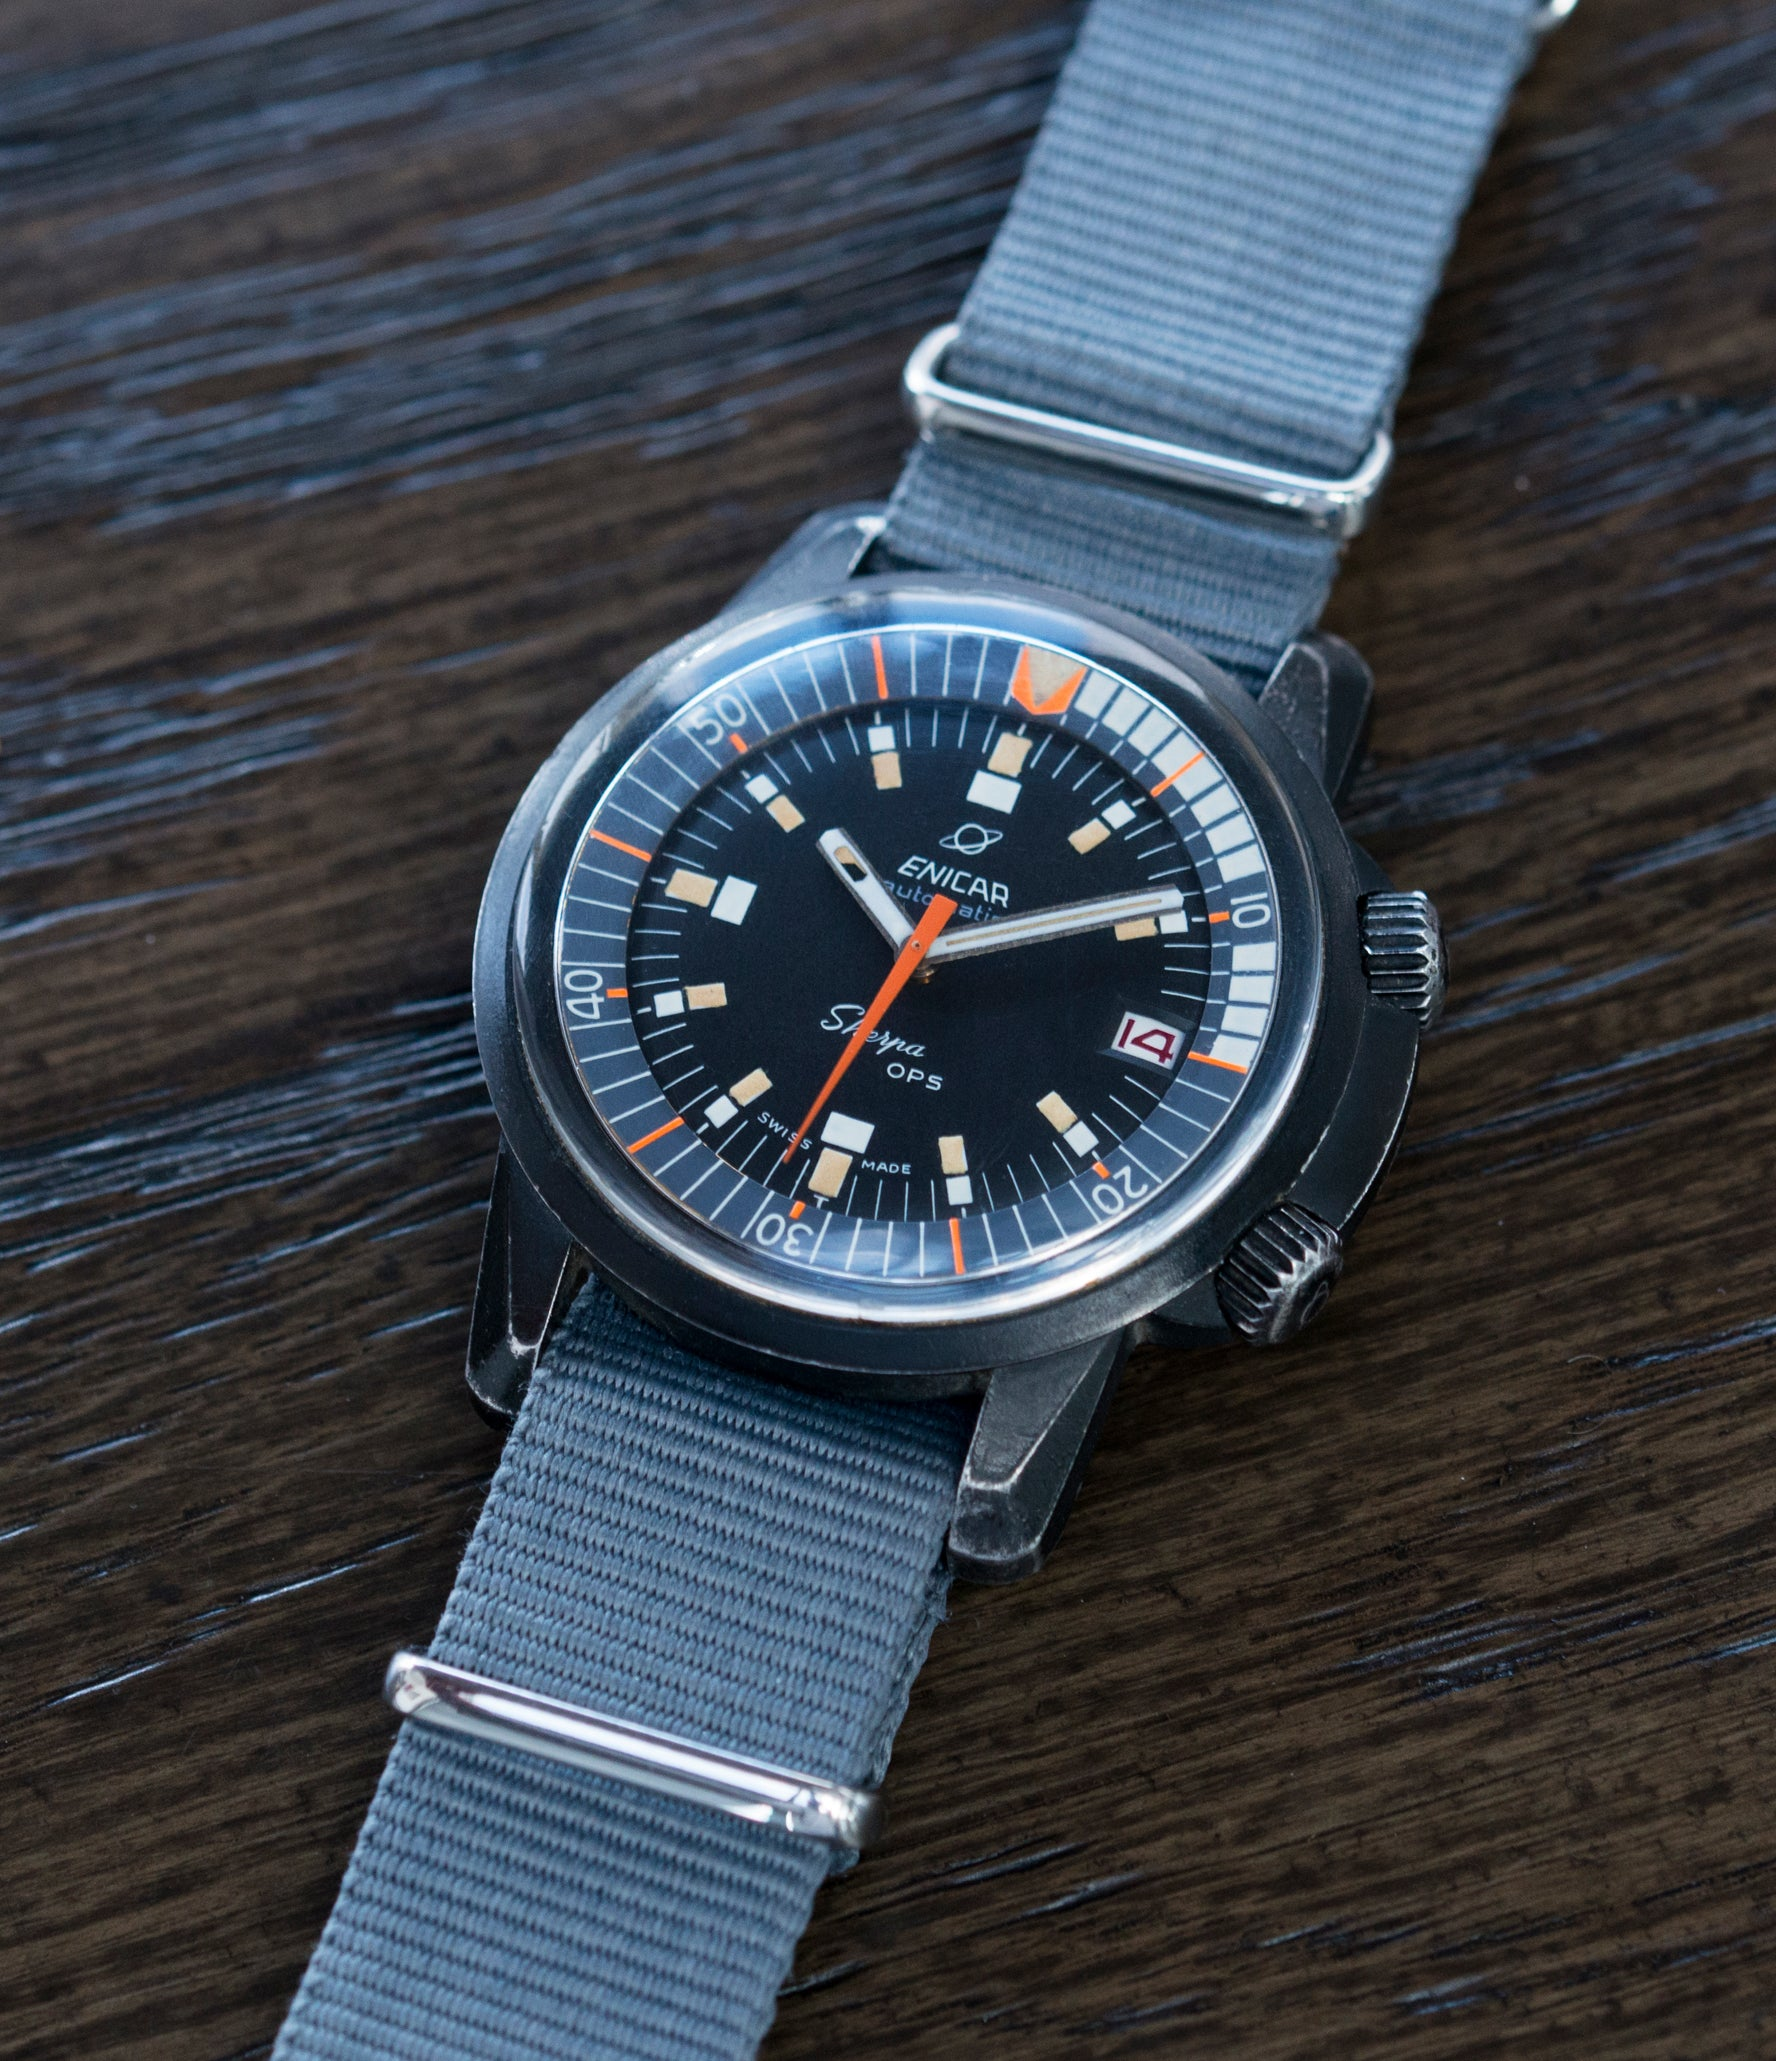 Sherpa OPS 144/35/03A Enicar 600 Mark 2 automatic AAR 167 diver watch for sale online at A Collected Man London UK specialist of rare vintage watches